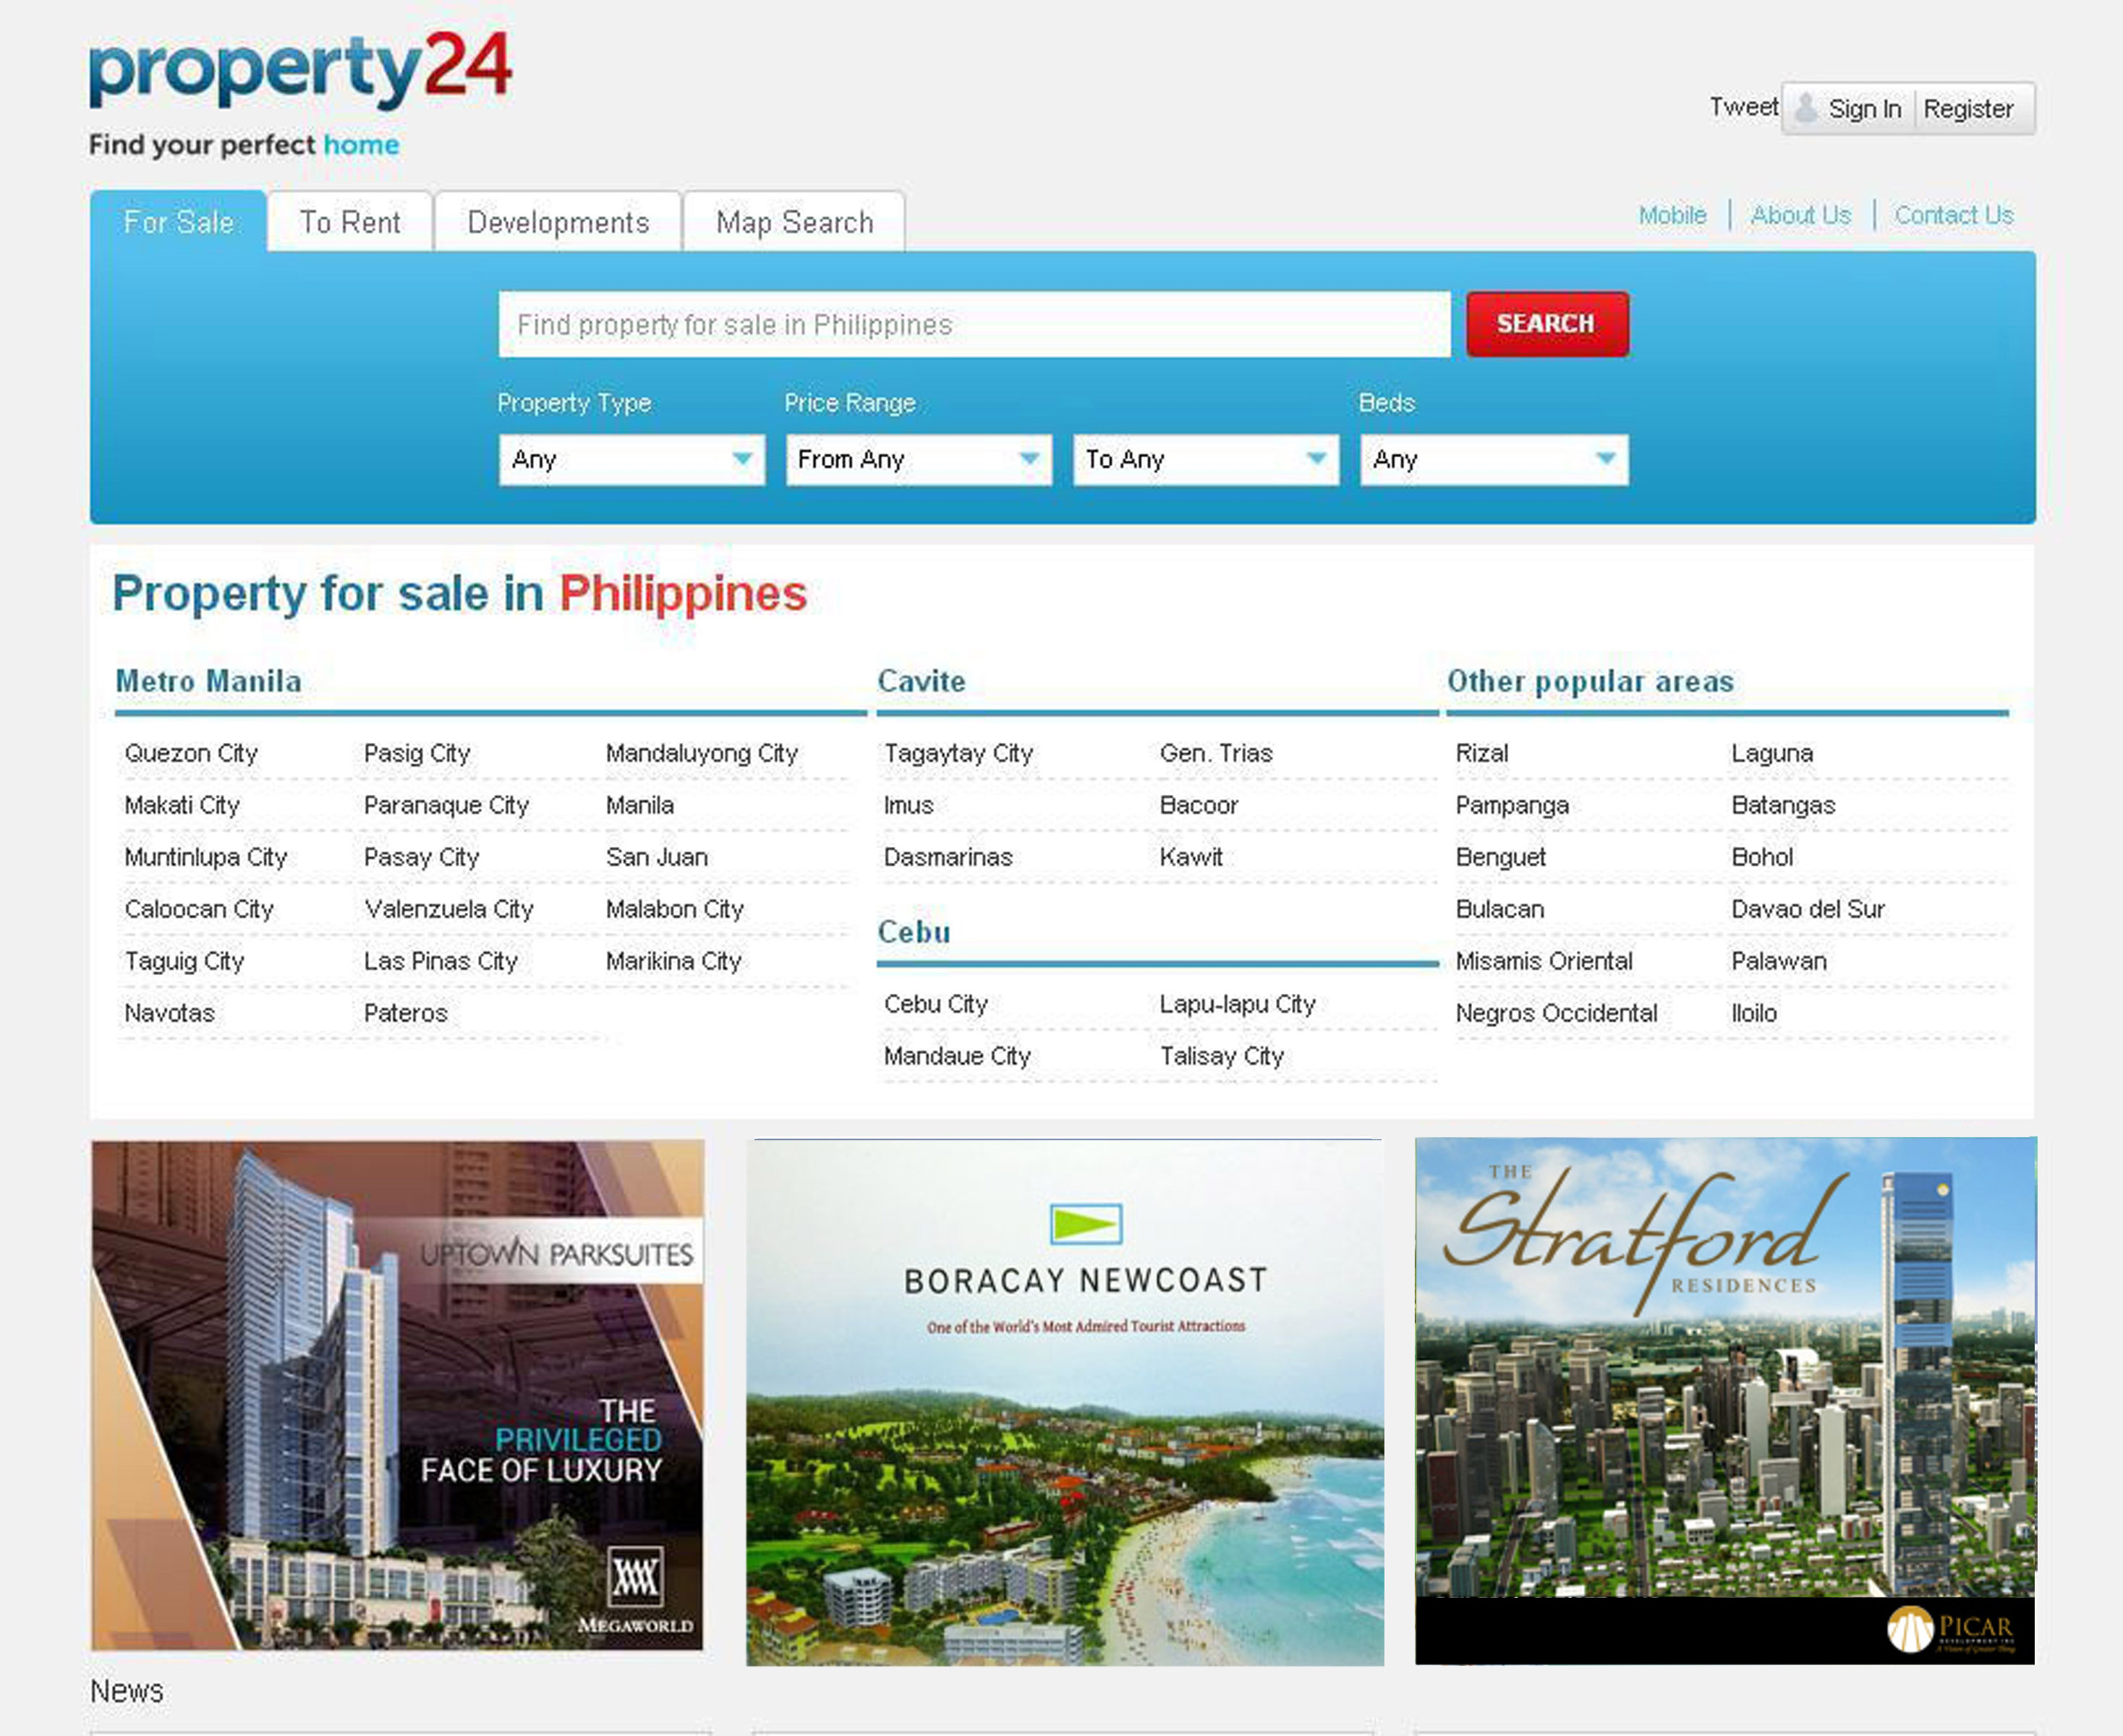 Property24 Property search portal photo1 Sulit Launches Property24 Website